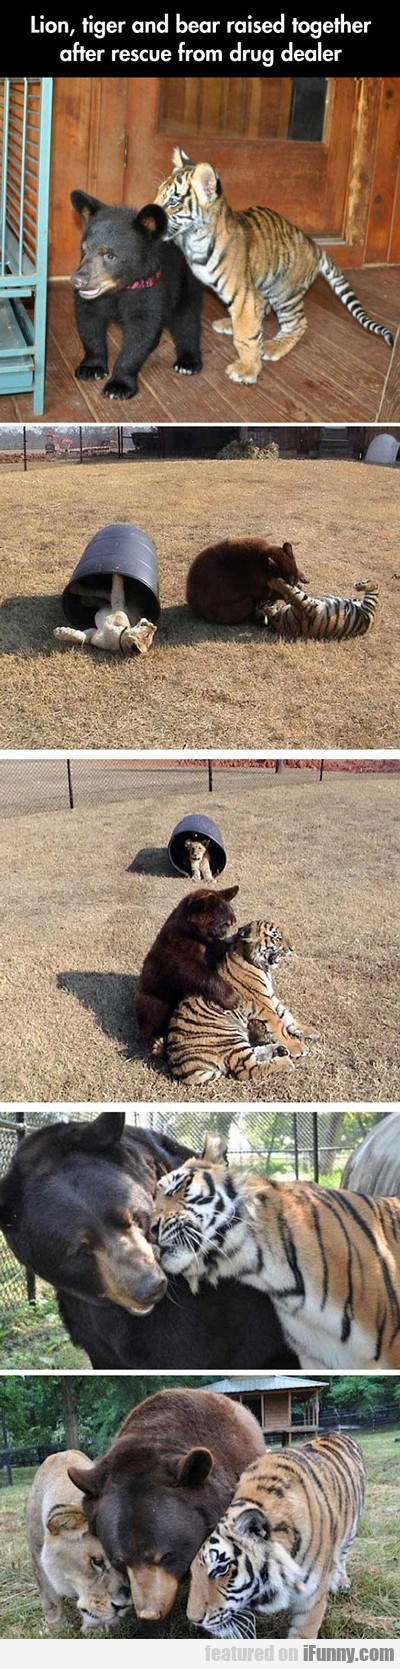 lion, tiger and bear raised together...